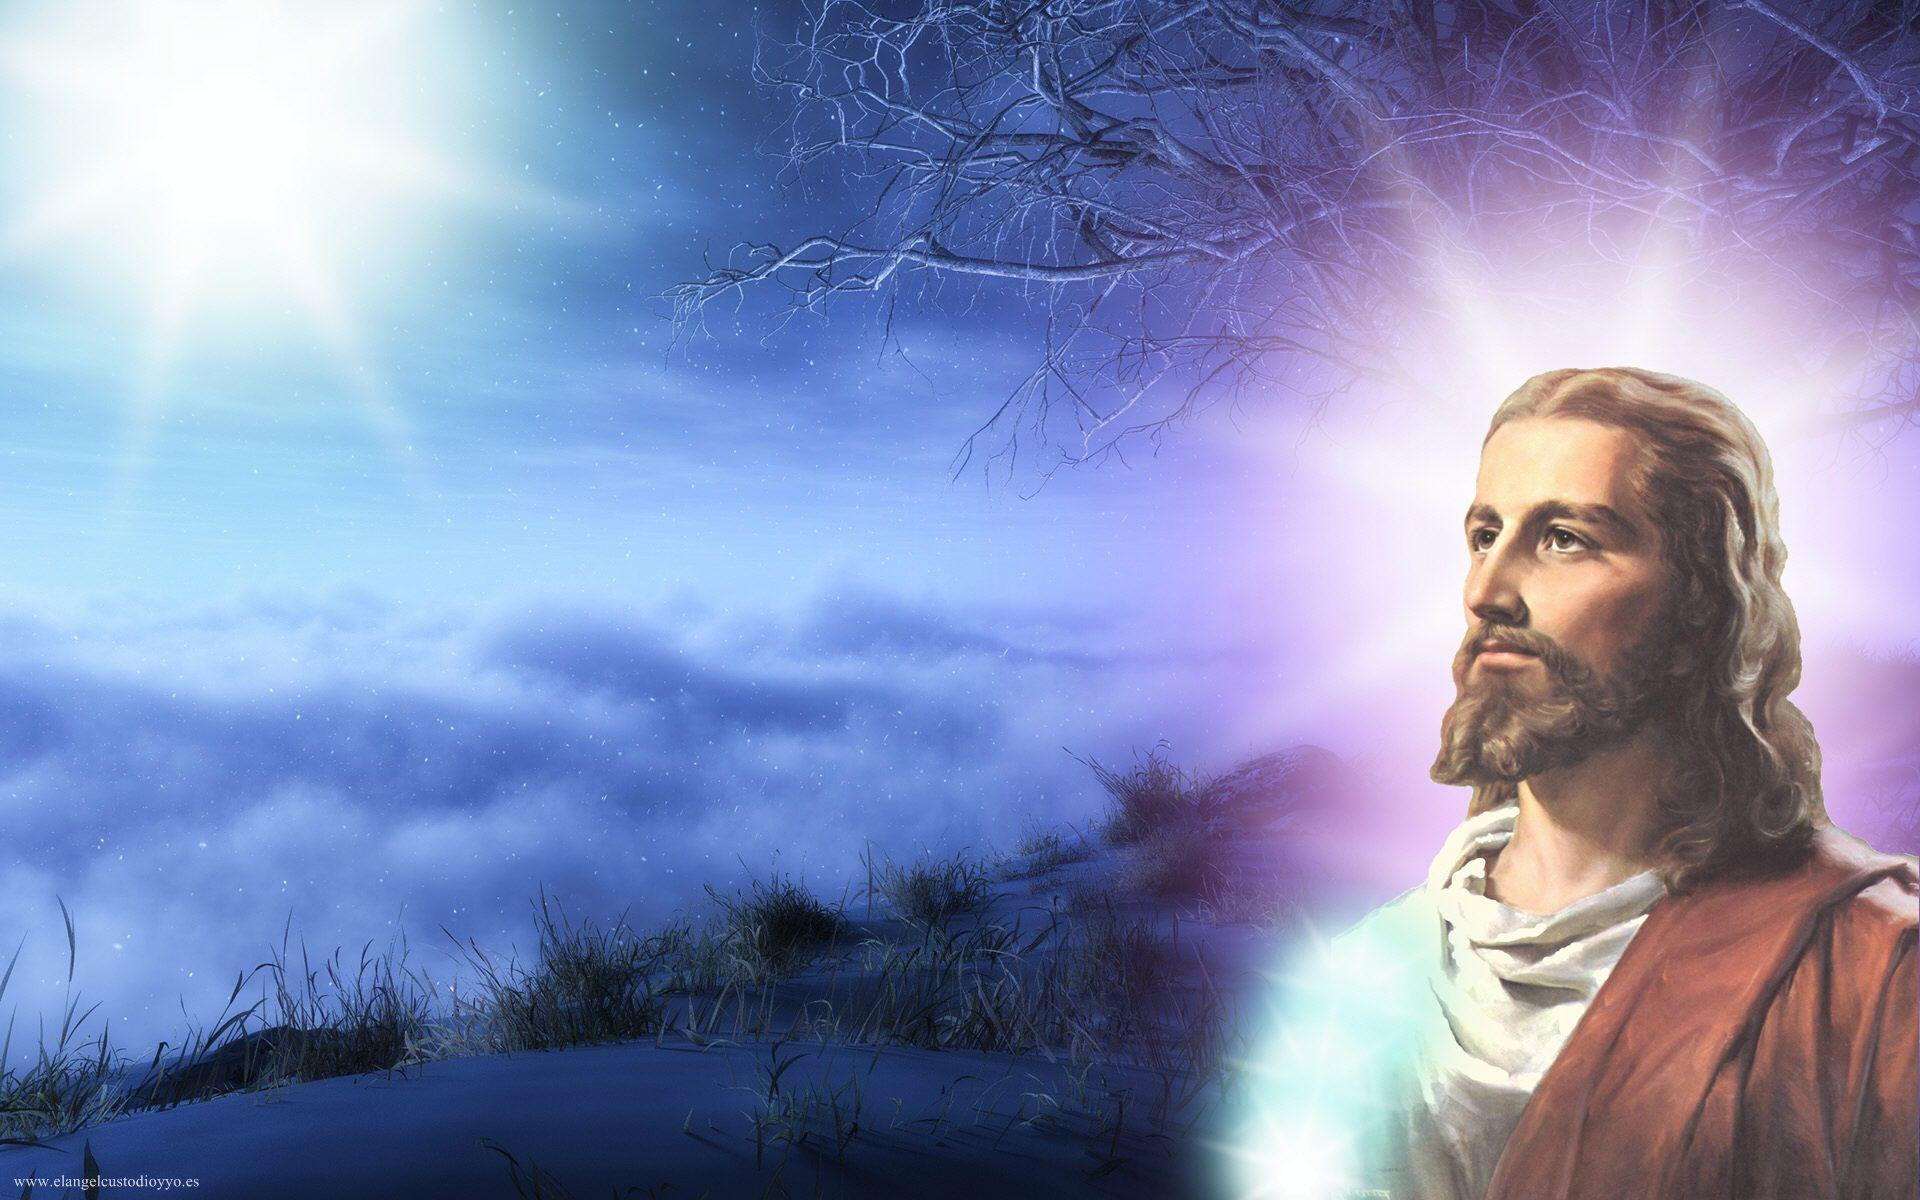 jesus christ wallpaper images wallpaper cave jesus christ wallpaper images